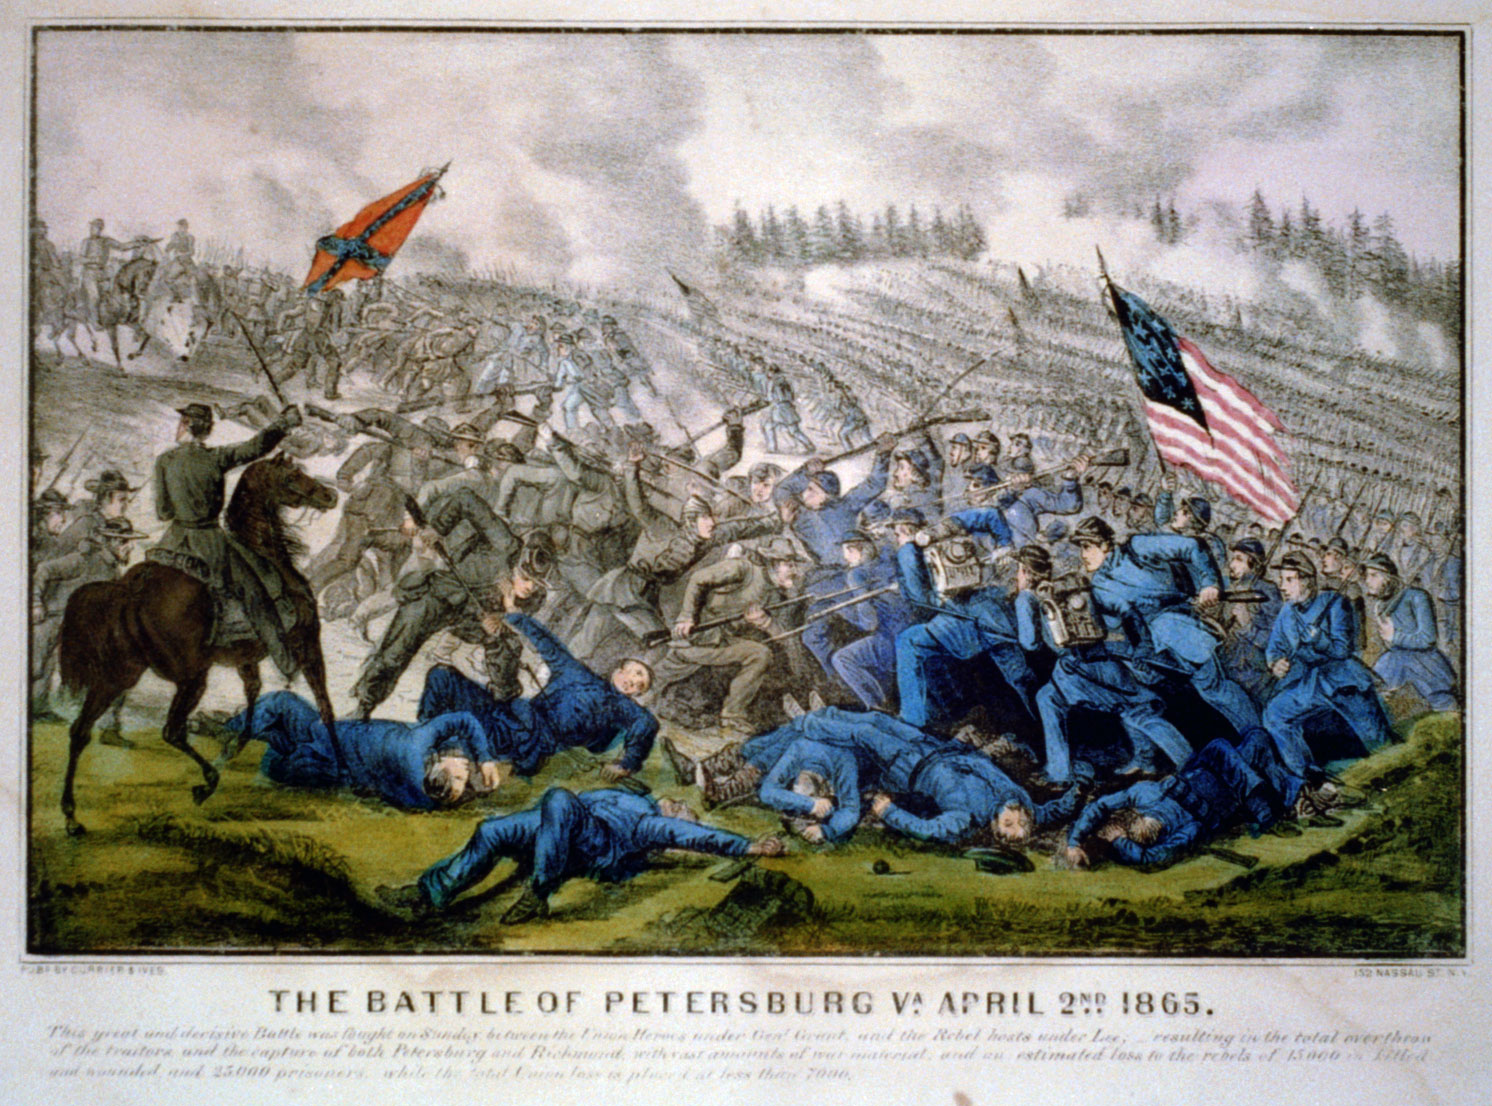 The battle of Petersburg Va. April 2nd 1865, lithograph by Currier and Ives